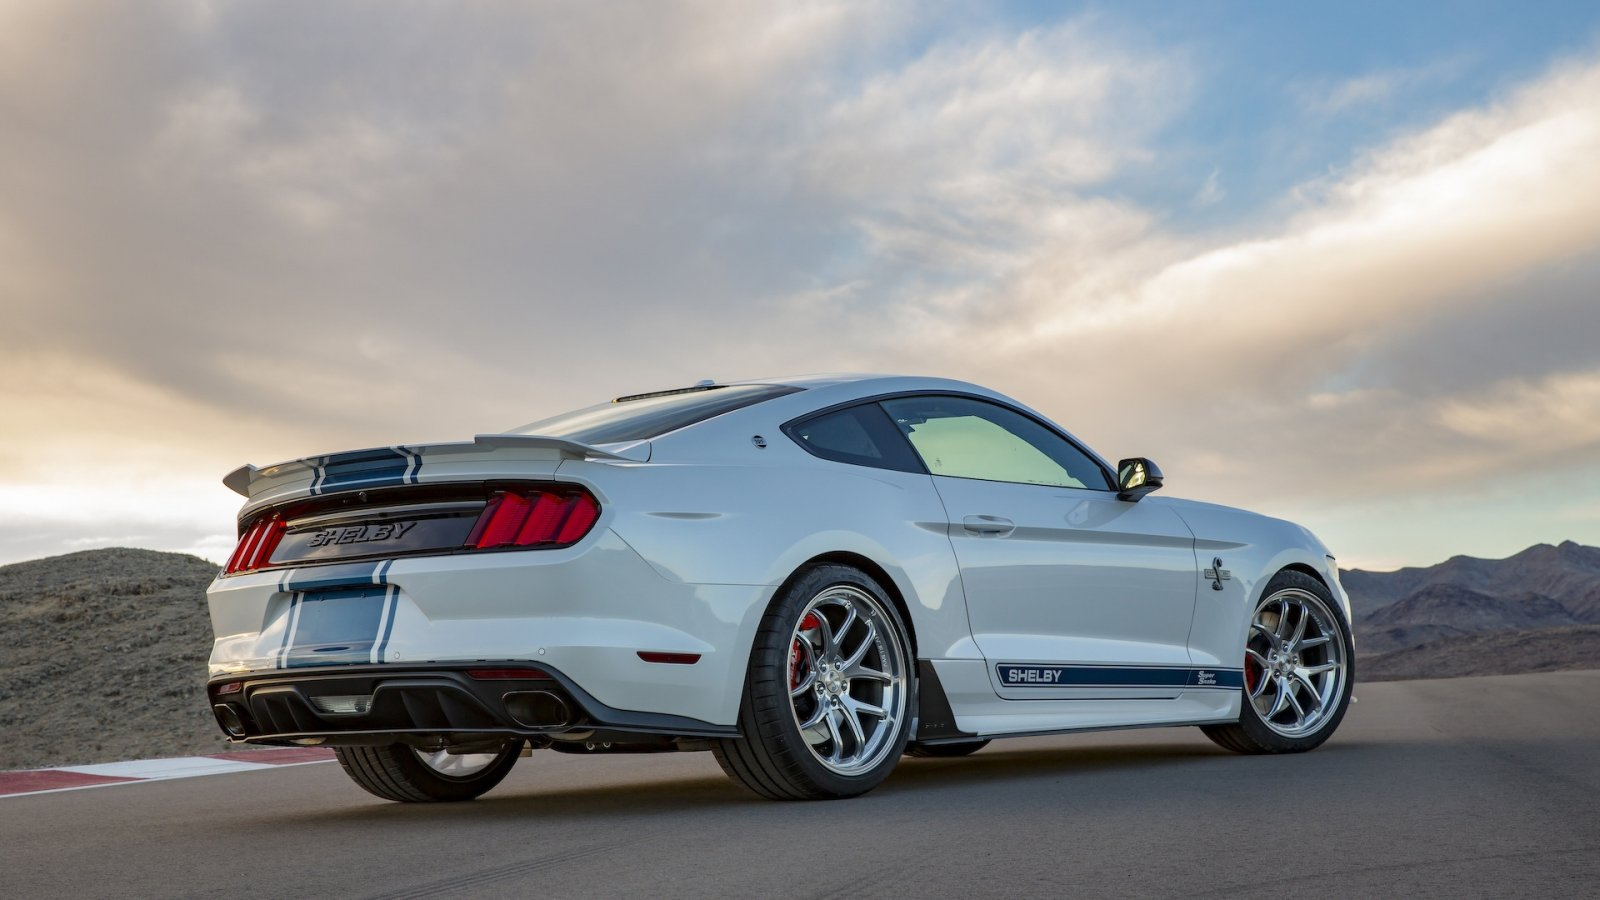 Shelby Super Snake makes America great again / Autonieuws ...